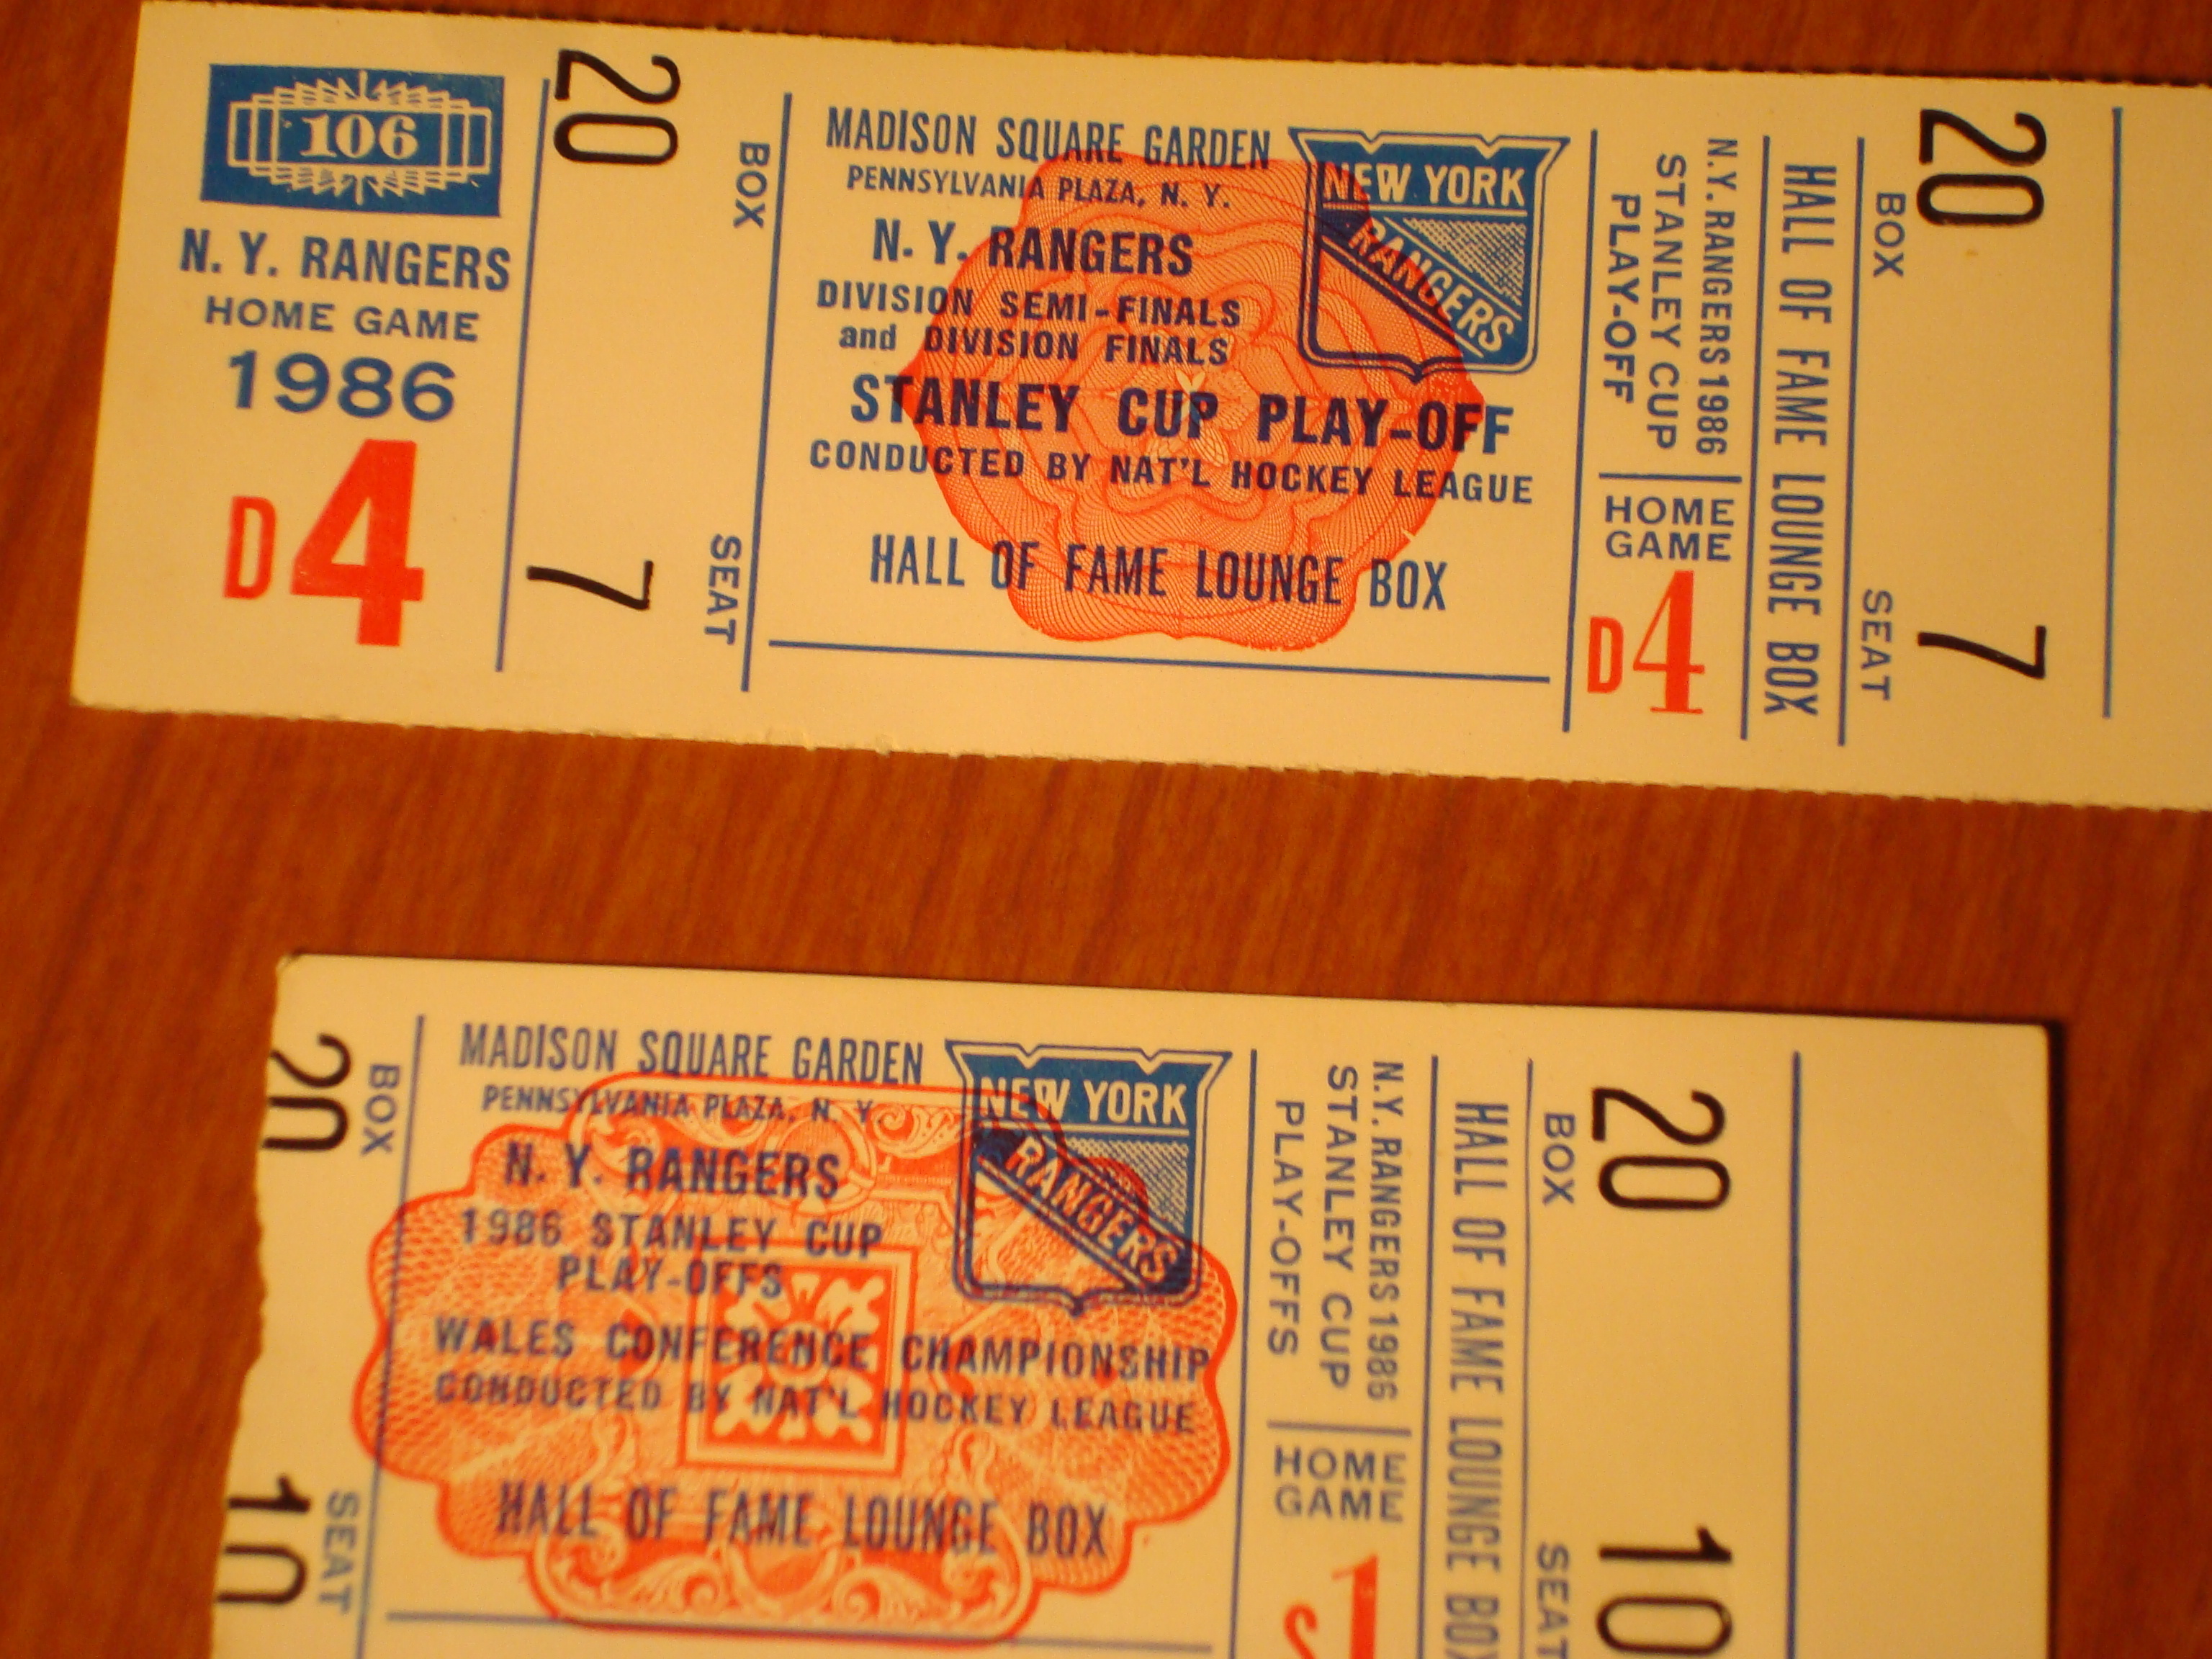 Official Tickets to Hall of Fame Lounge Box for 1986 NHL Stanley Cup Playoffs for New York Rangers Hockey Club